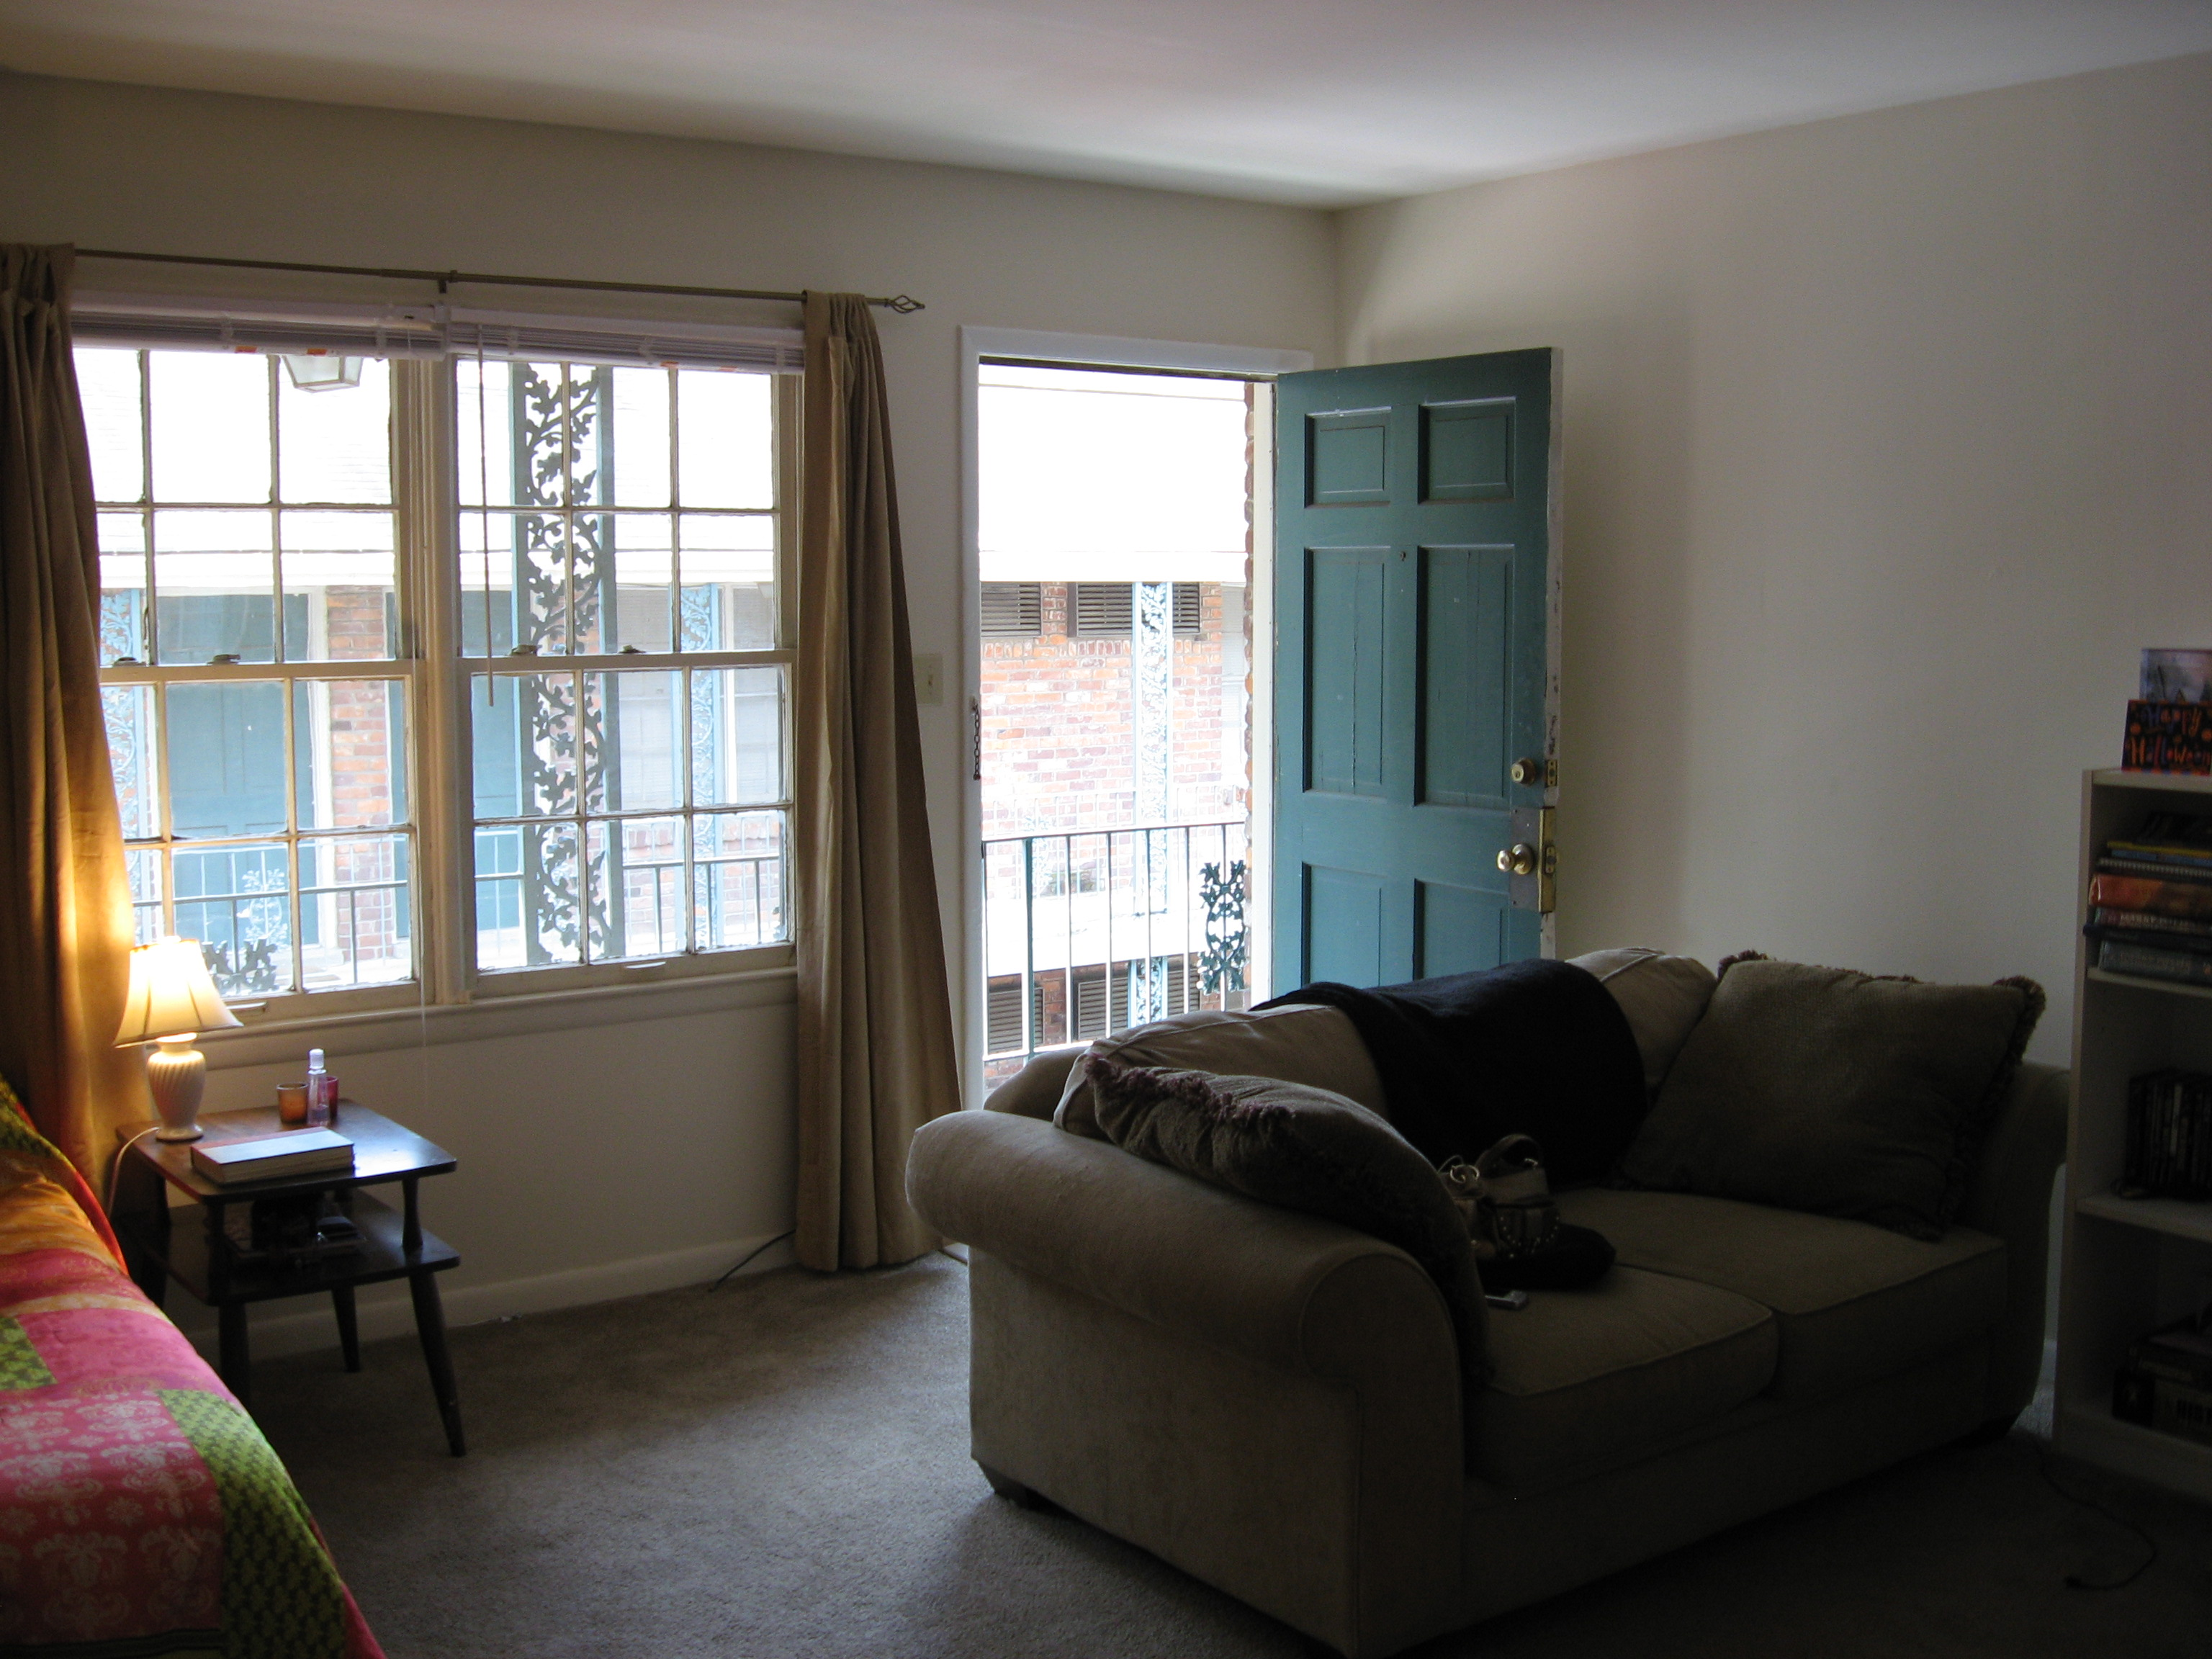 422 Aylesford Place | Apt. #3